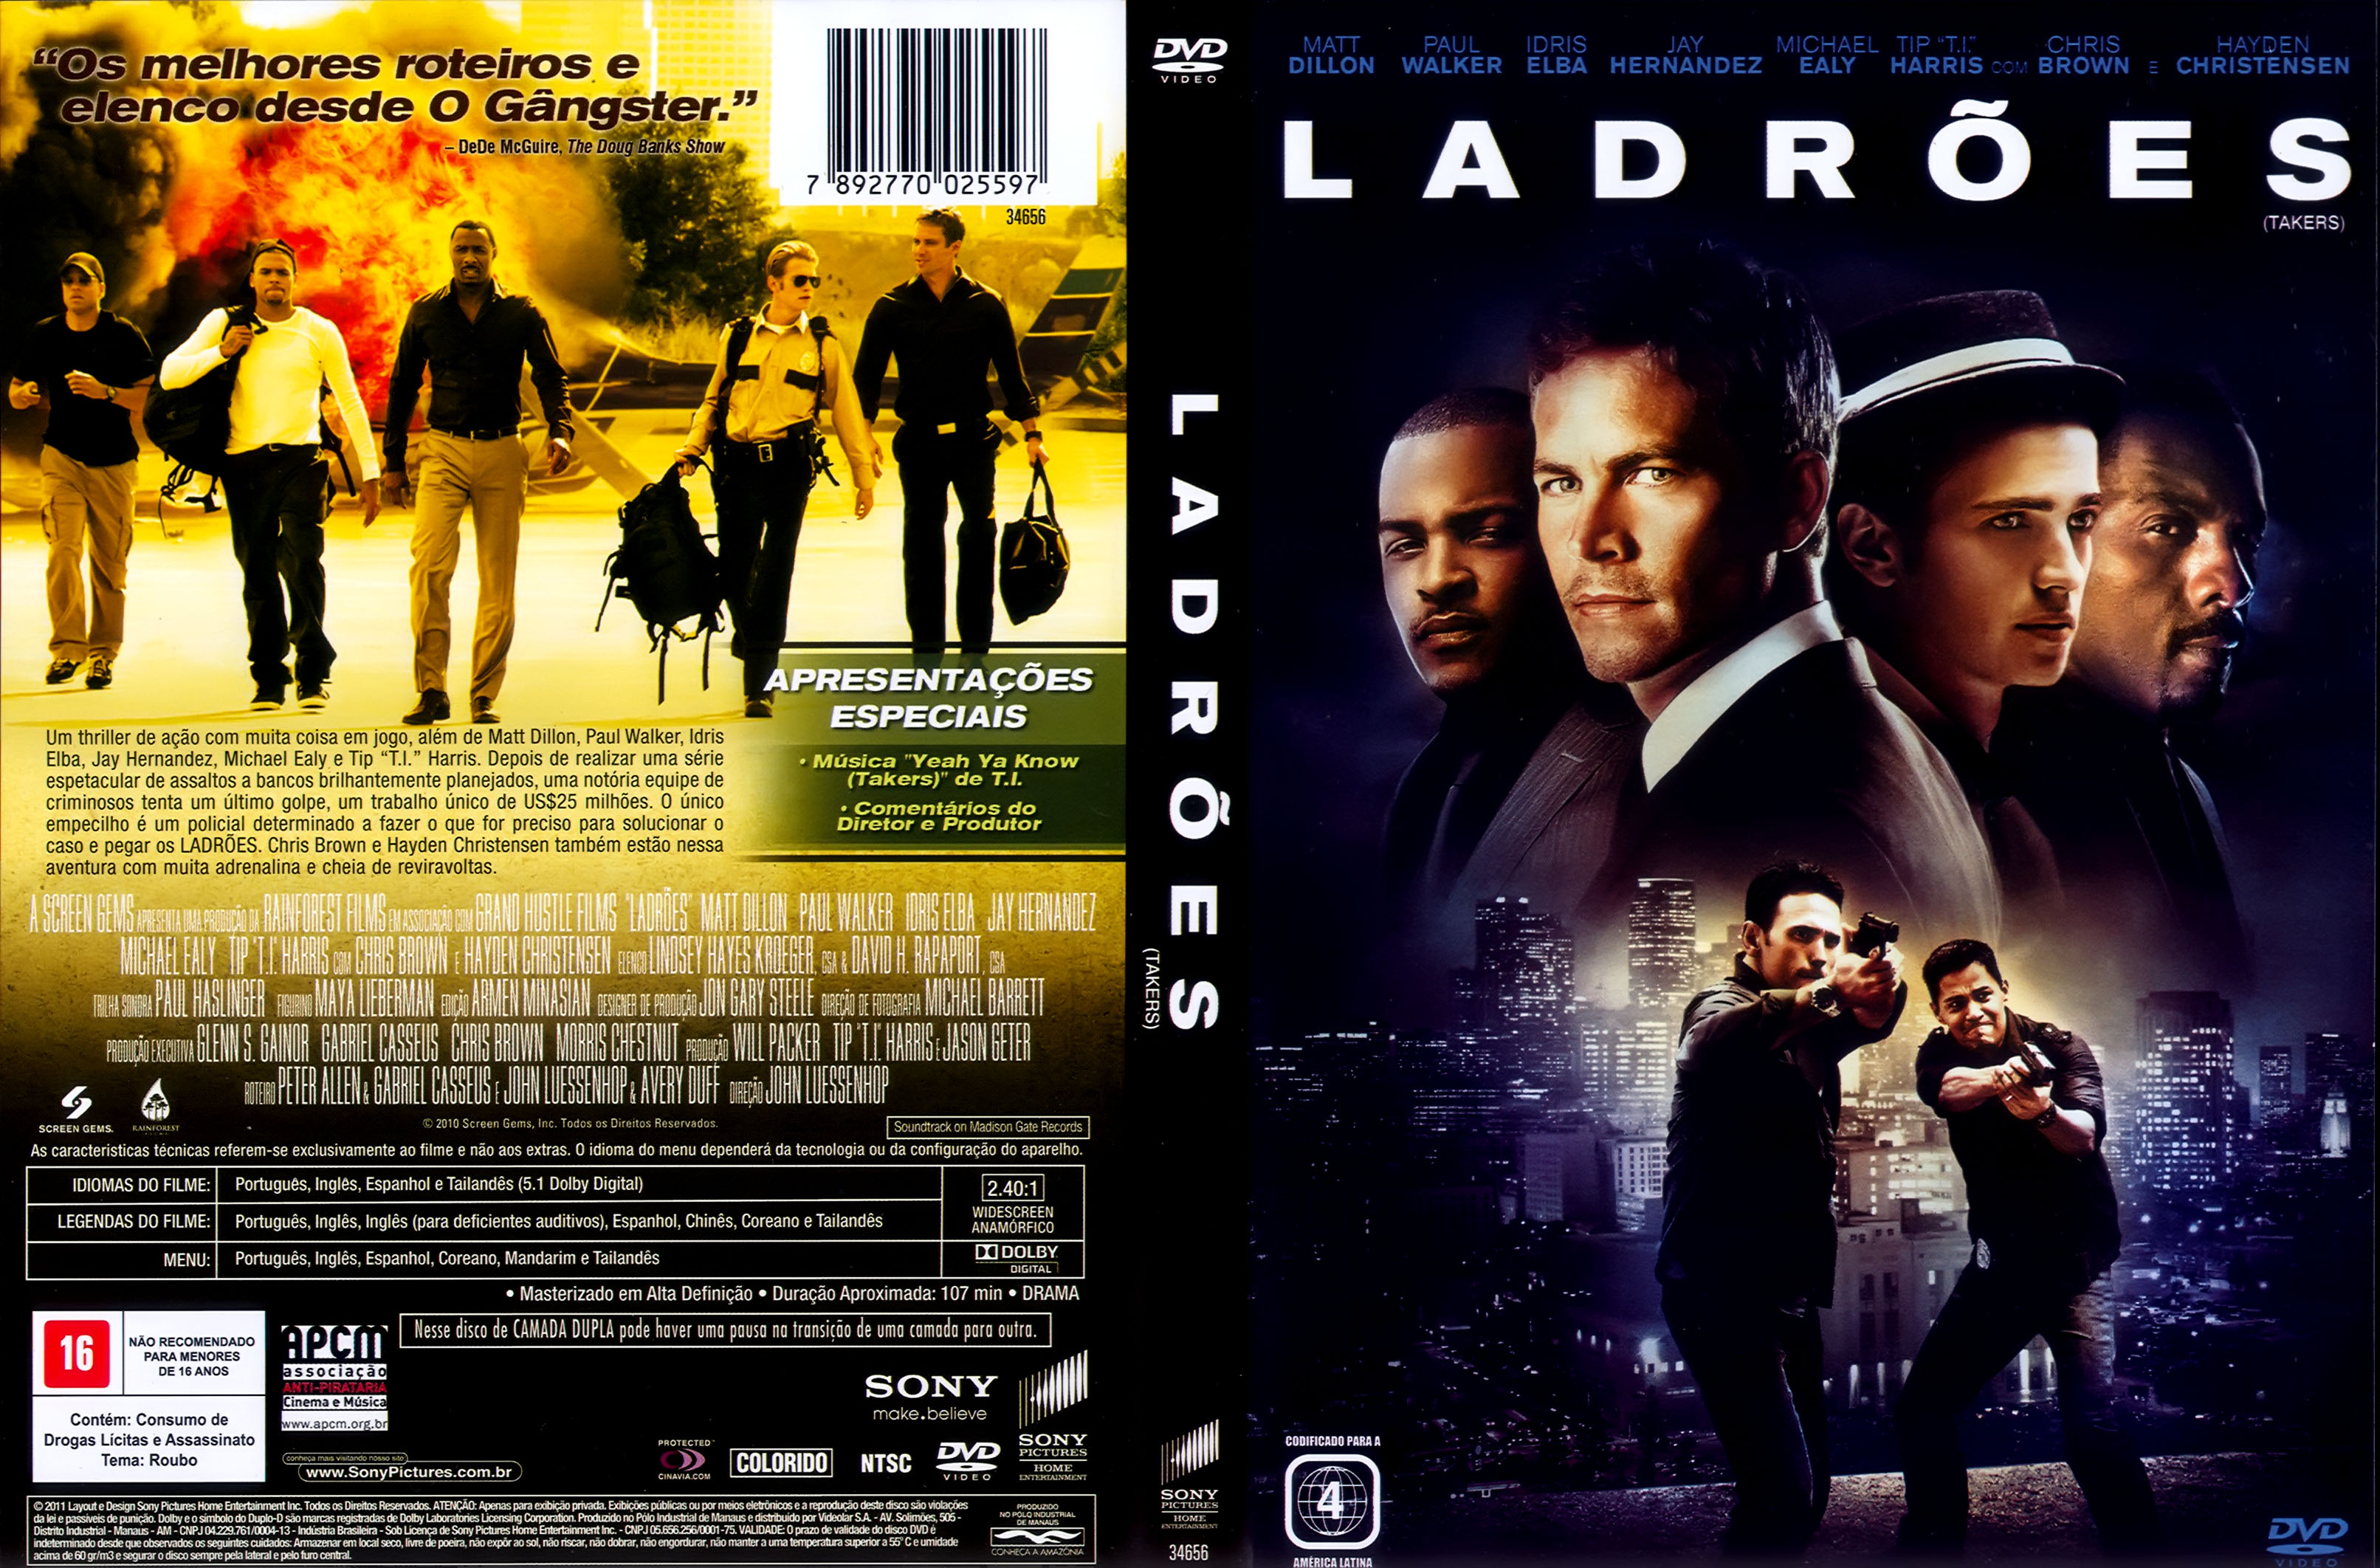 Ladroes